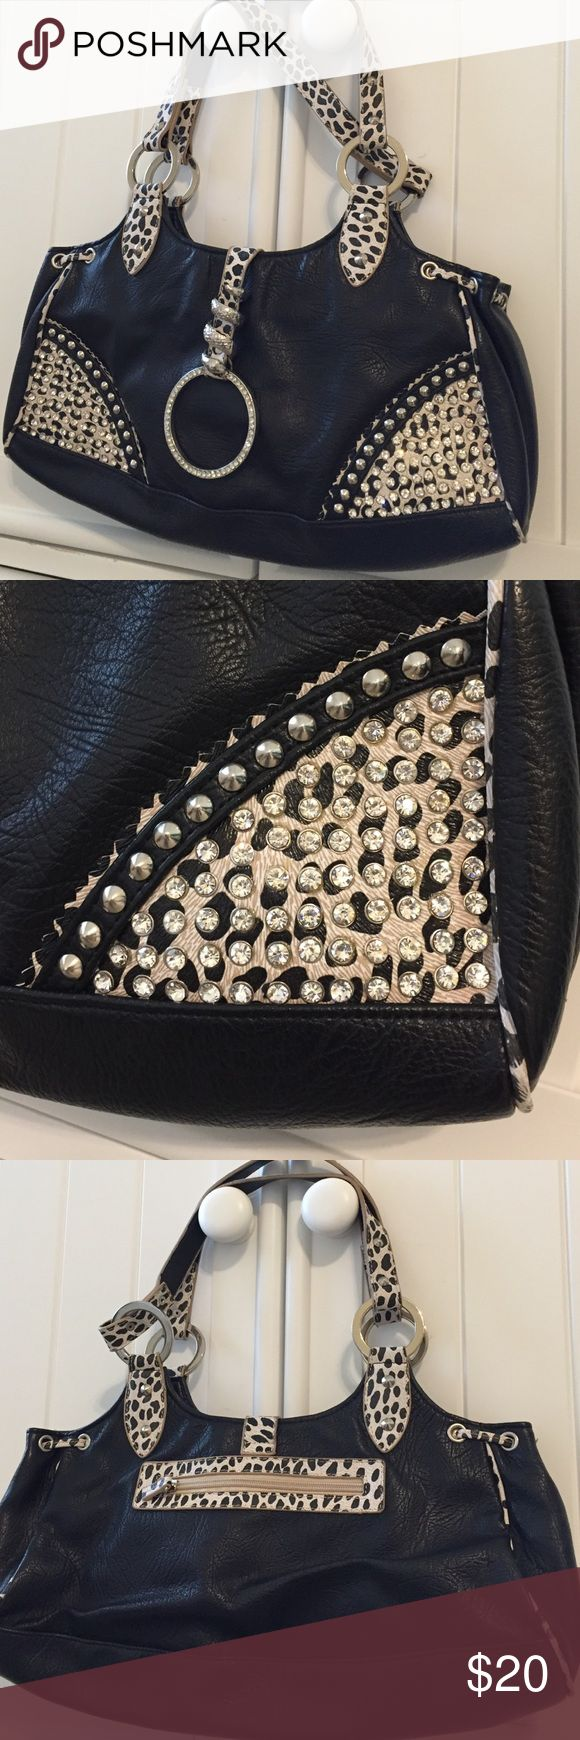 leopard and bling purse by BLUE ELEGANCE FALL IS HERE and it's time for this cute purse to go with all of your cute fall clothes. black with black and white leopard, clear crystals and silver hardware + dust bag.  but she's so cute ❤️ BLUE ELEGANCE Bags Shoulder Bags